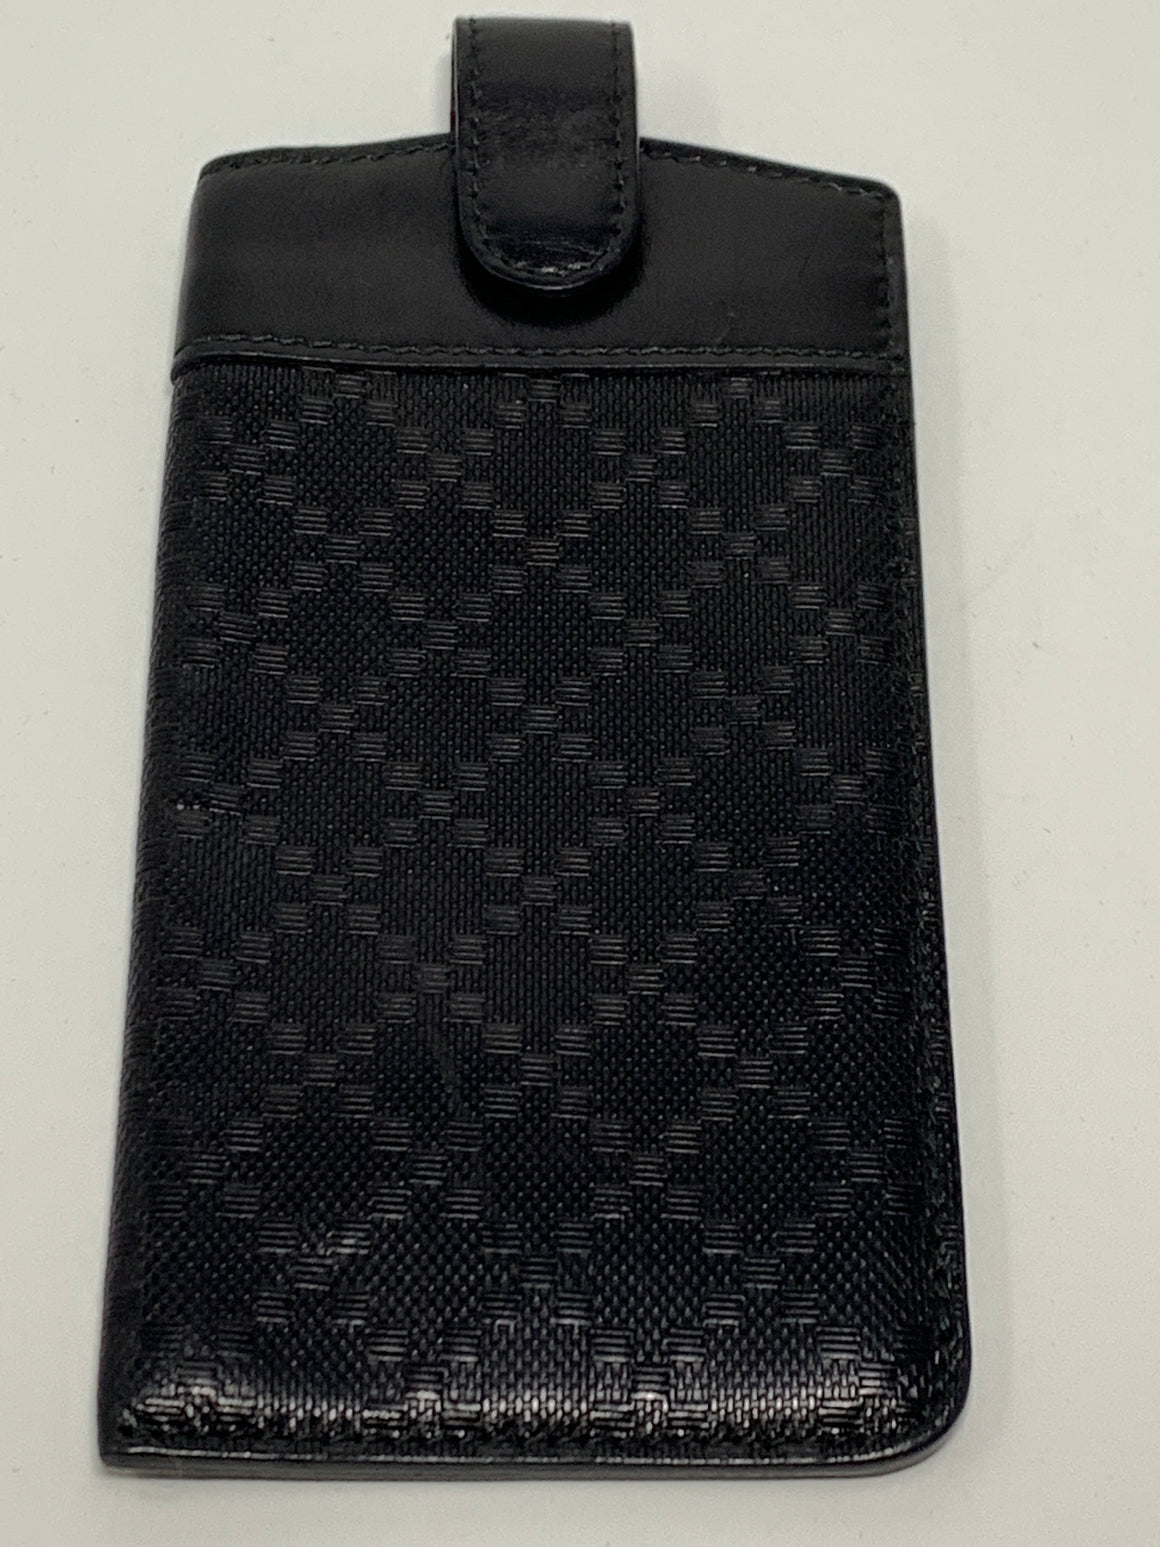 Louis Vuitton Phone Case - New York Authentic Designer - Louis Vuitton